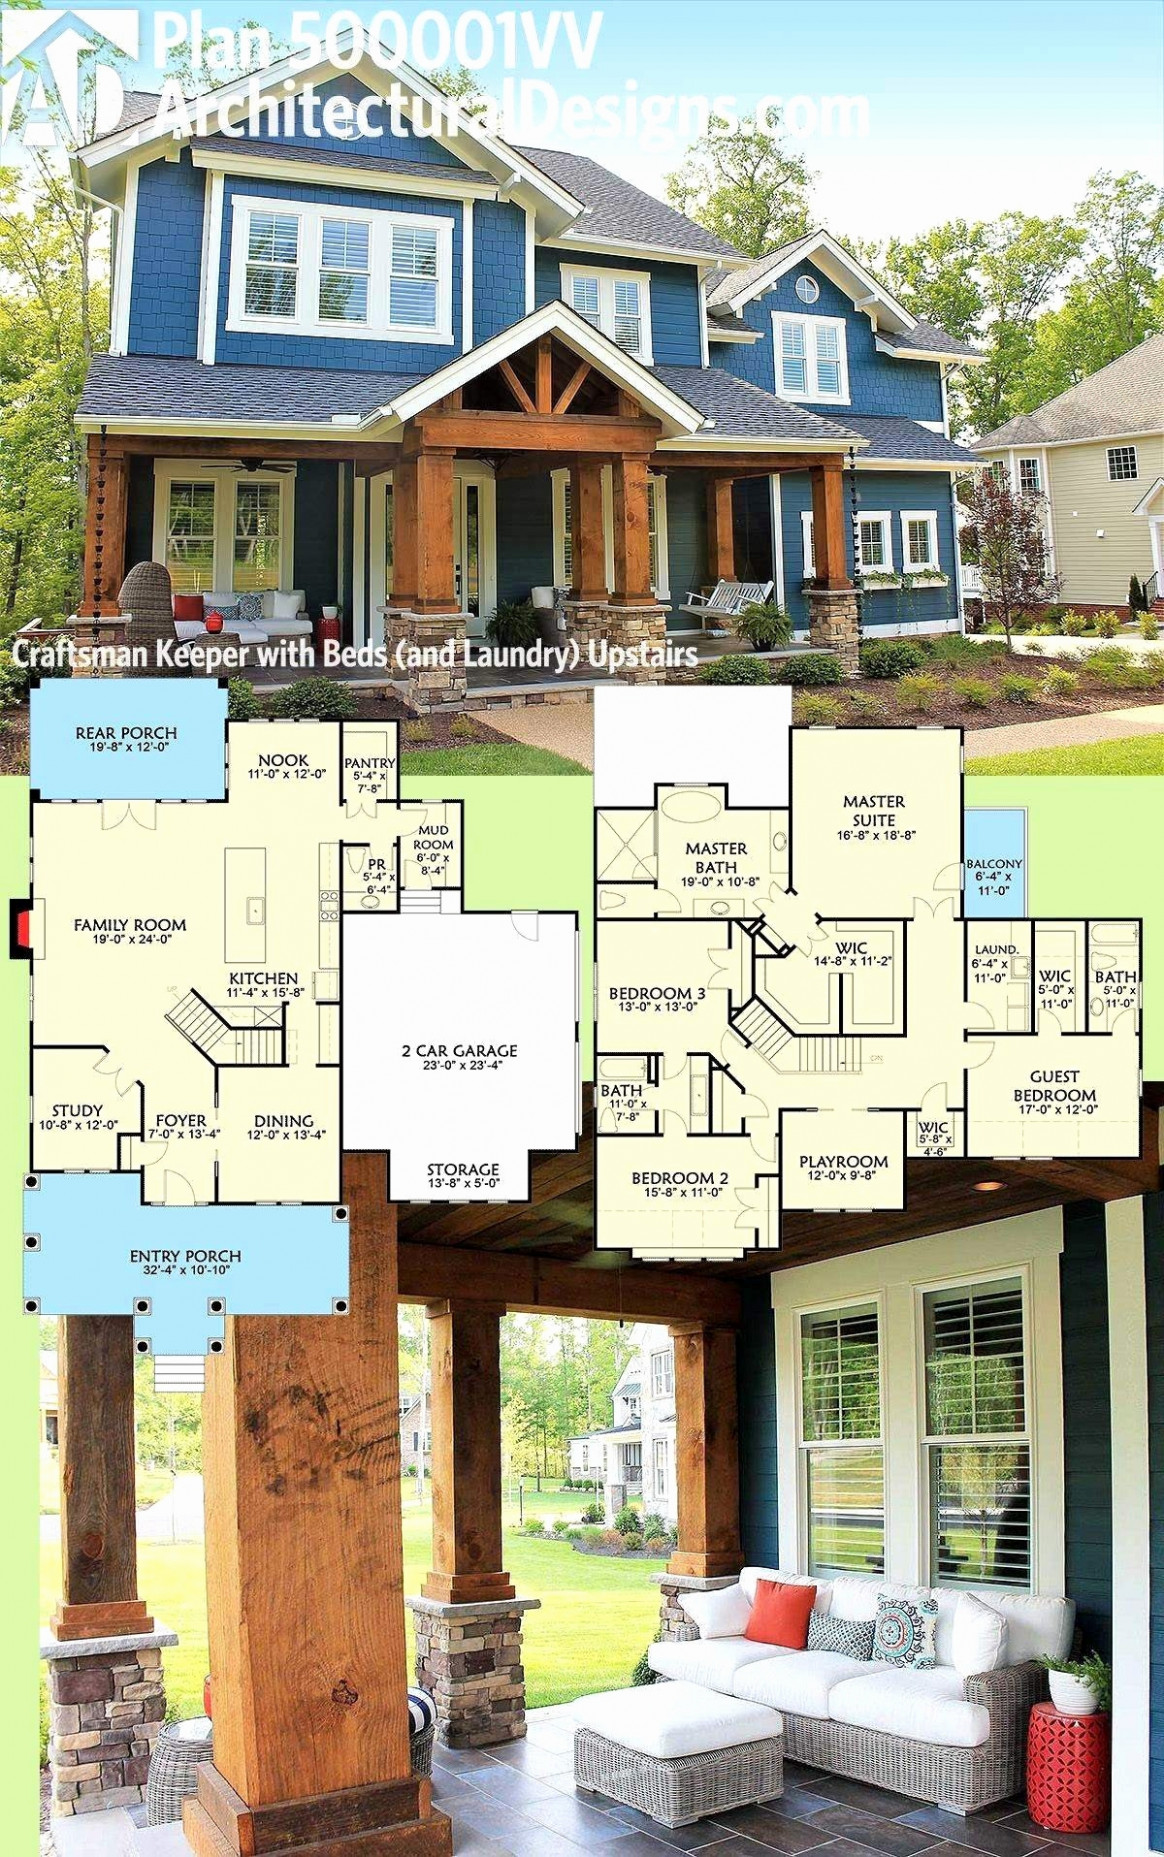 House Plans With Carport Plan Samples Deck Ideas For The ..